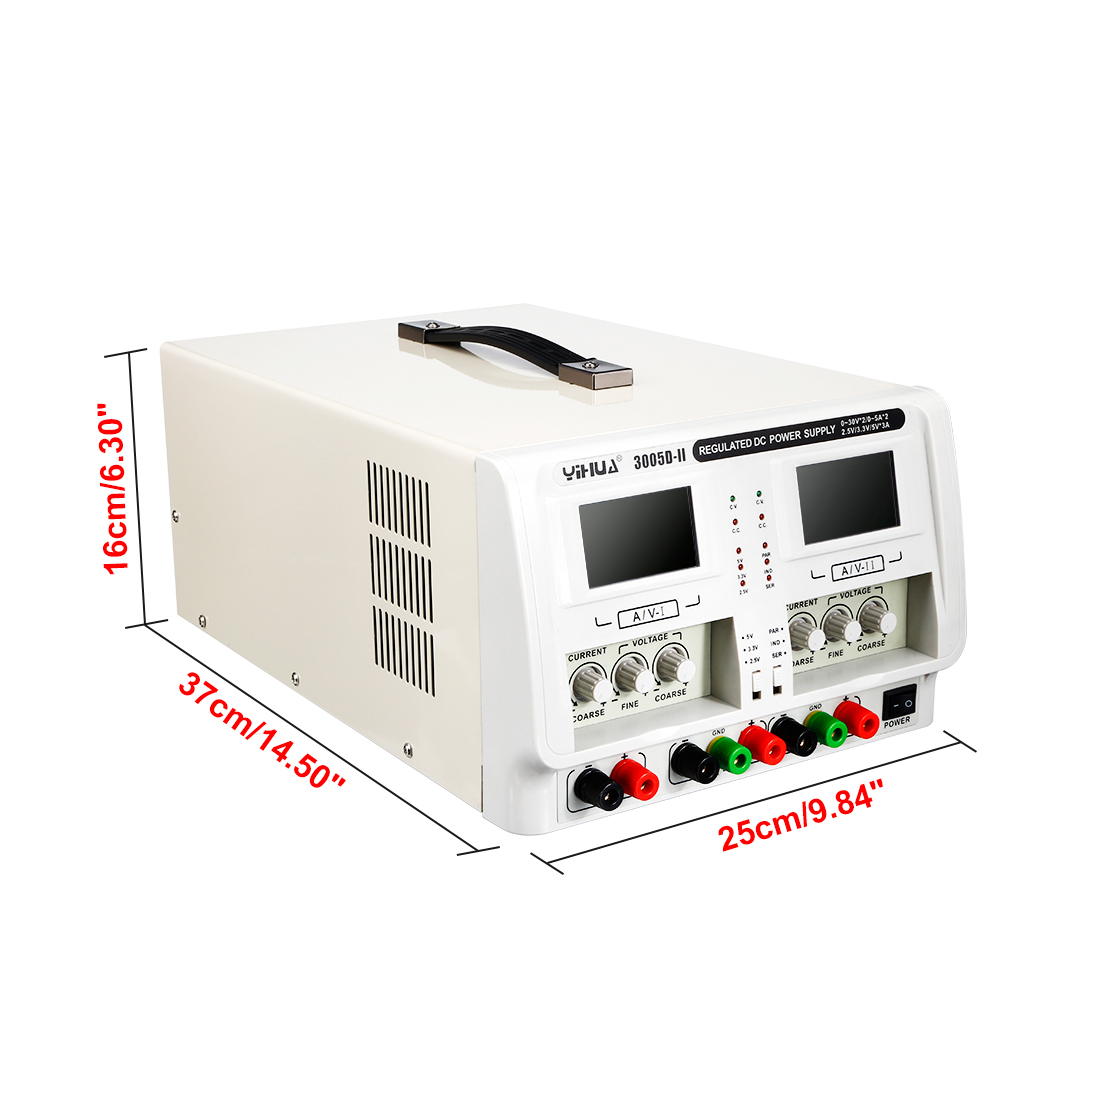 0~30V 0~5A Variable Adjustable Switching Precision DC Power Supply LED Display - image 4 de 5